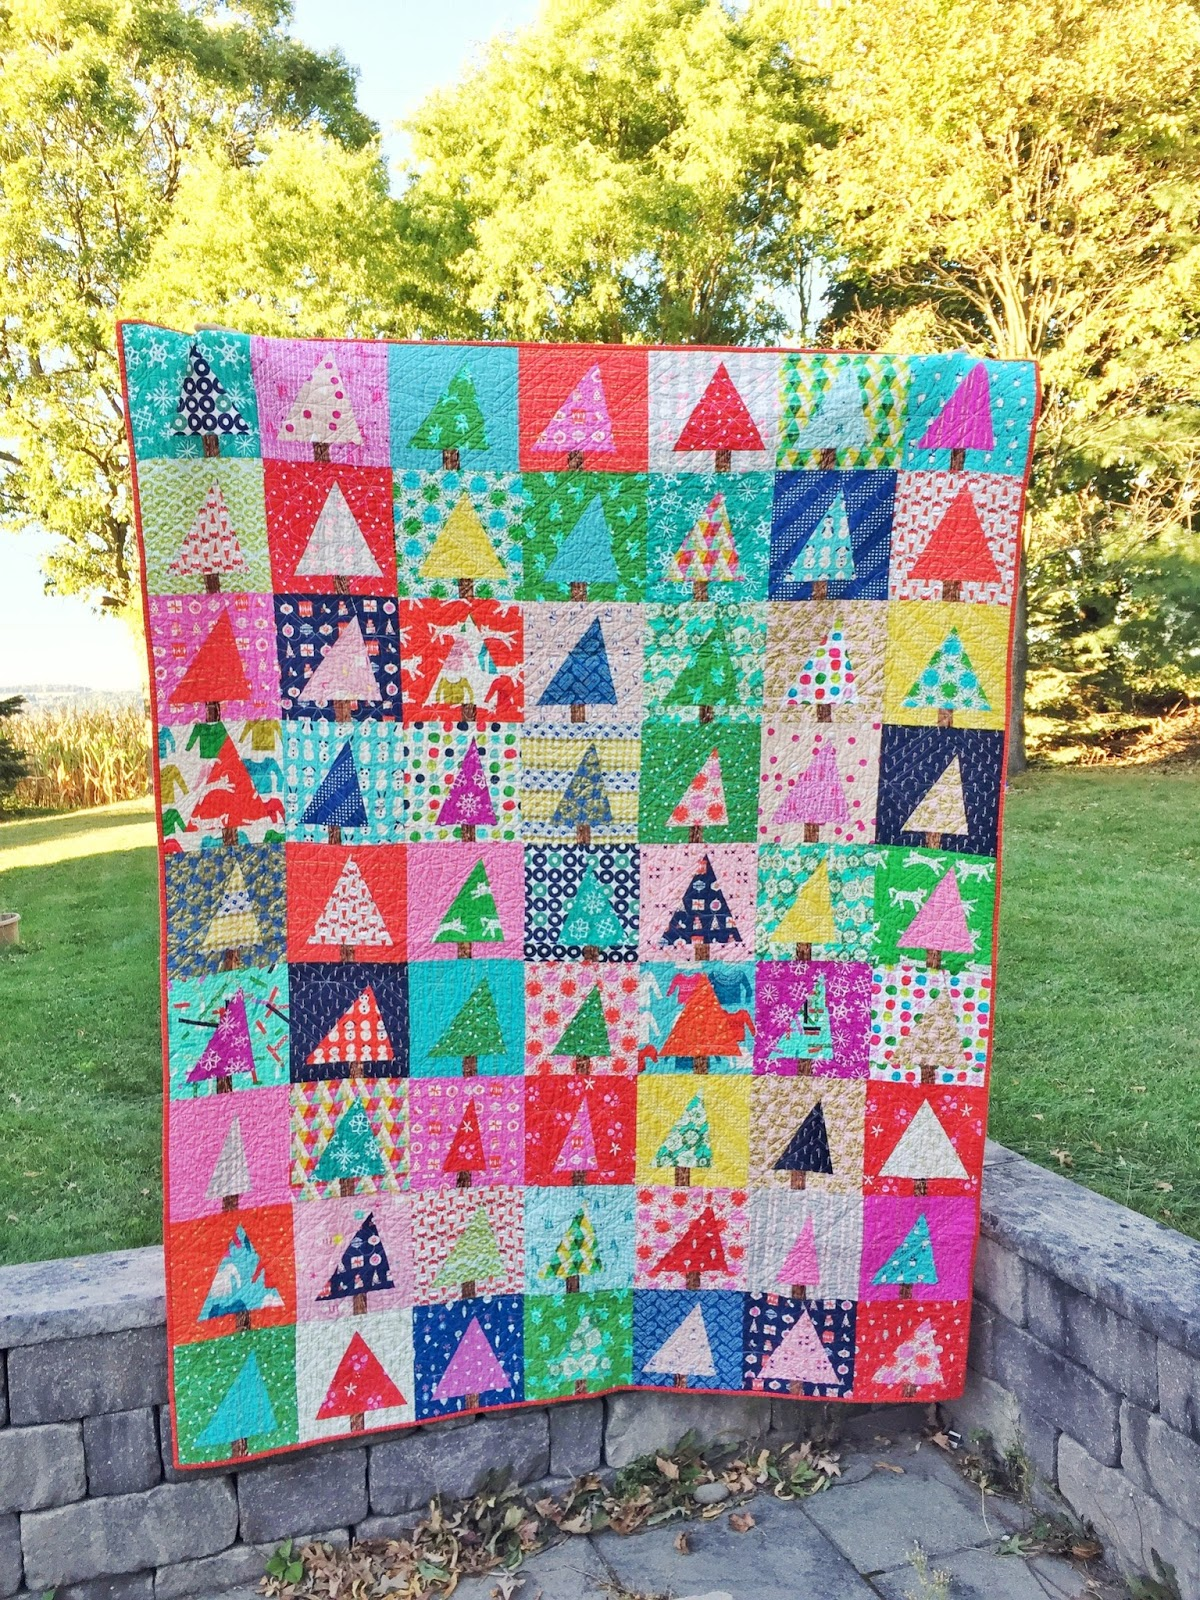 nero forest quilt fantasy qal s ii img post